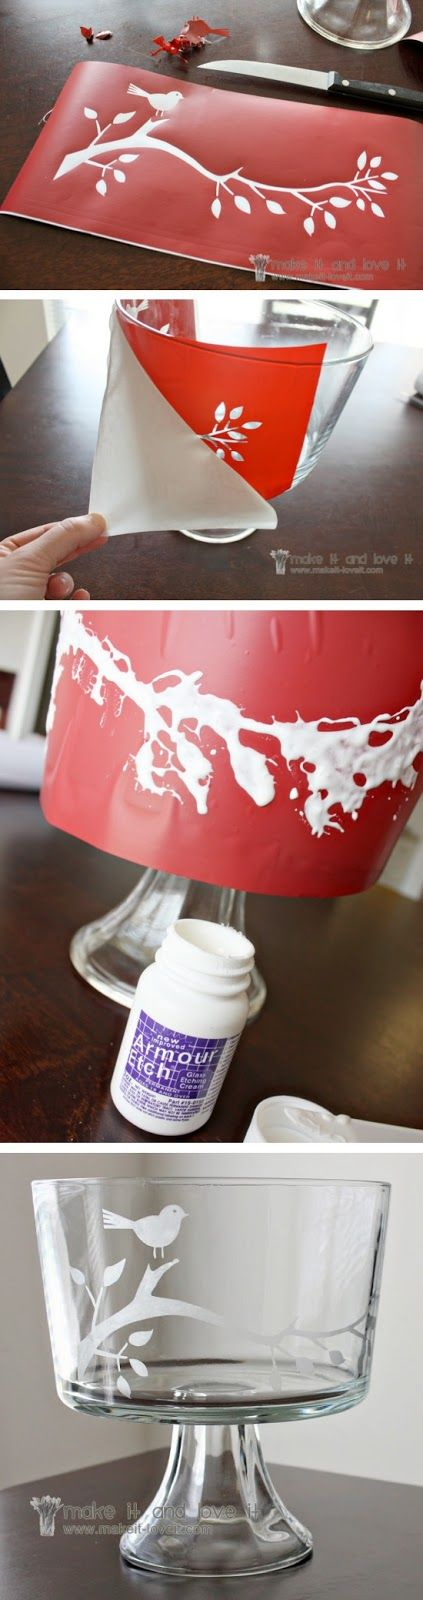 DIY Glass Etching: would be cool to do glass mugs for friends as personalized Xmas gifts